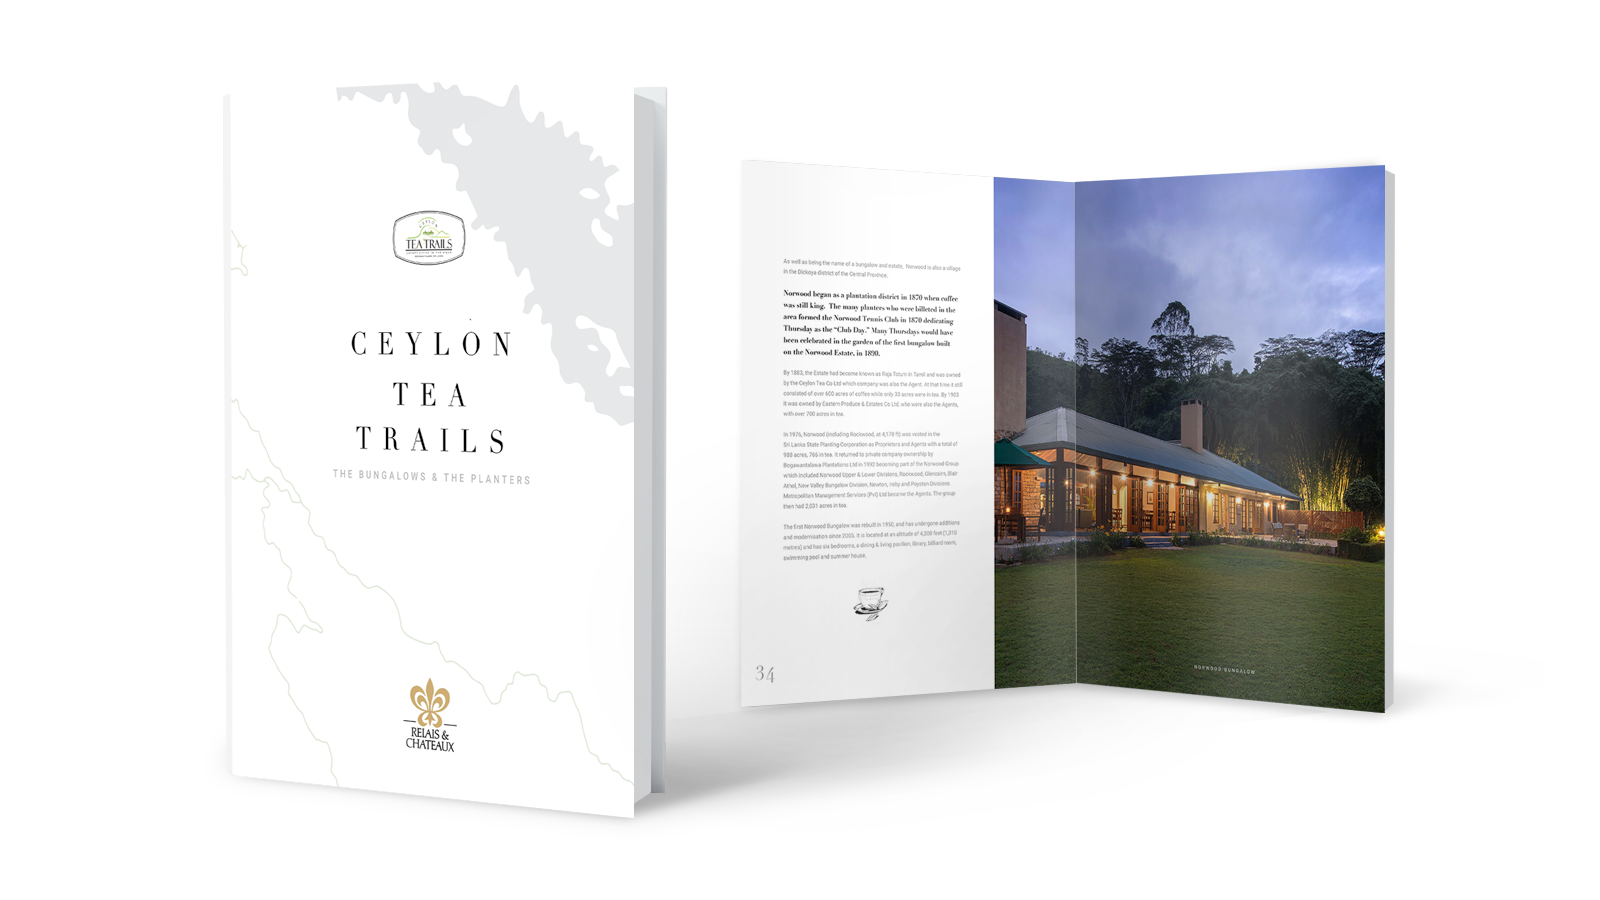 Ceylon Tea Trails Bungalows & Planters Book